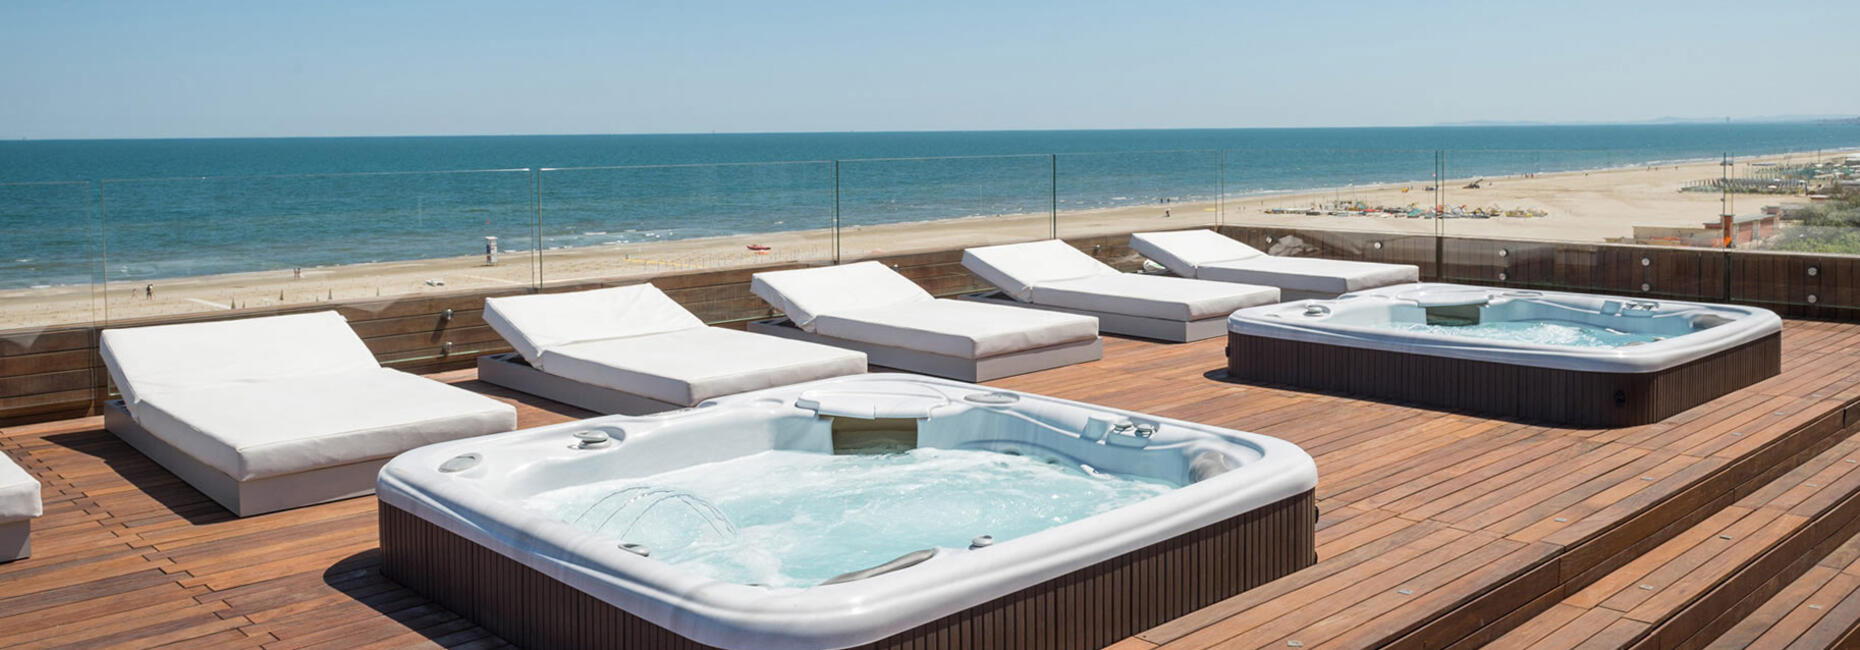 hotelcommodore en offers-last-minute-cervia 015